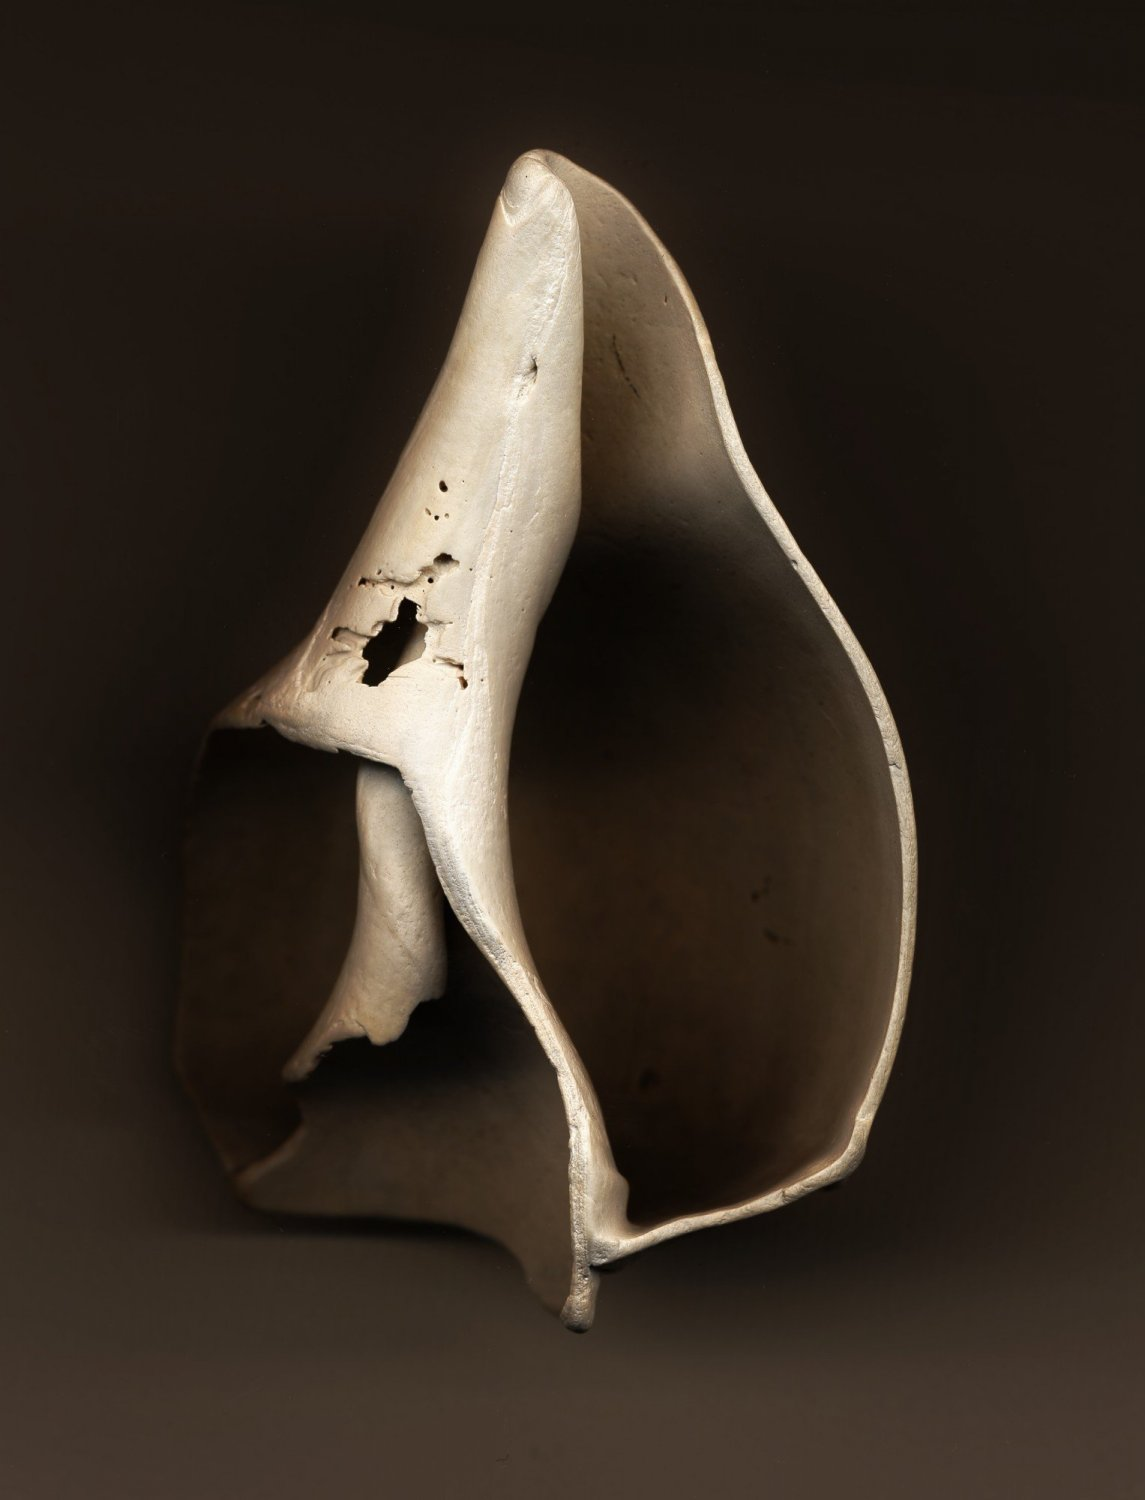 - Still life of a broken shell - My pictures taken in my studio - - art  - photography - by Tony Karp